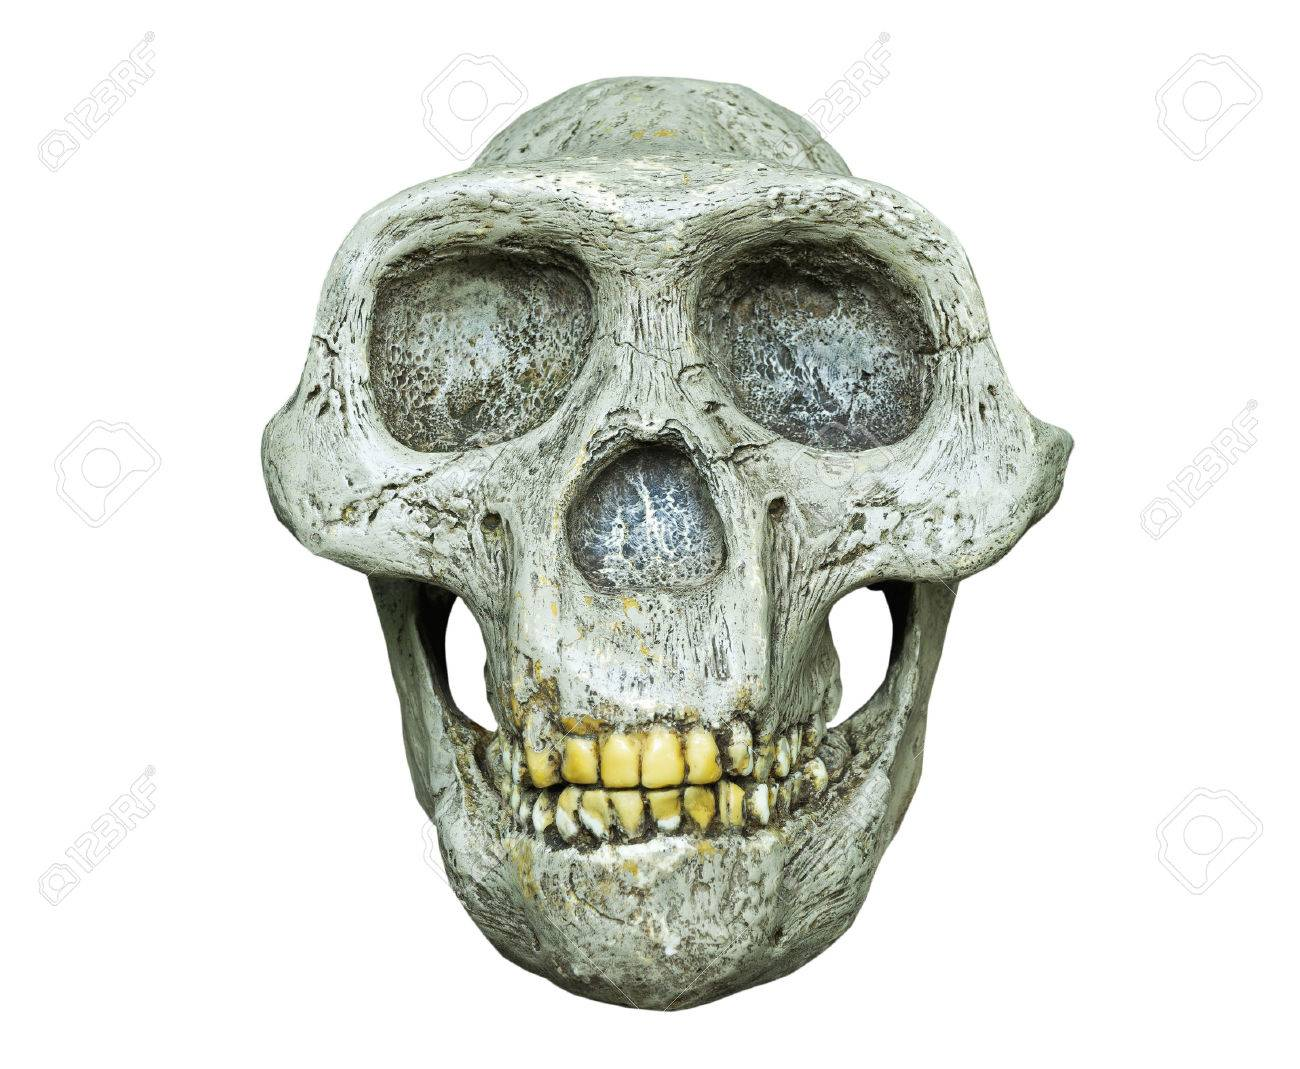 The skull of Australopithecus africanus from Africa on the white background - 47050149